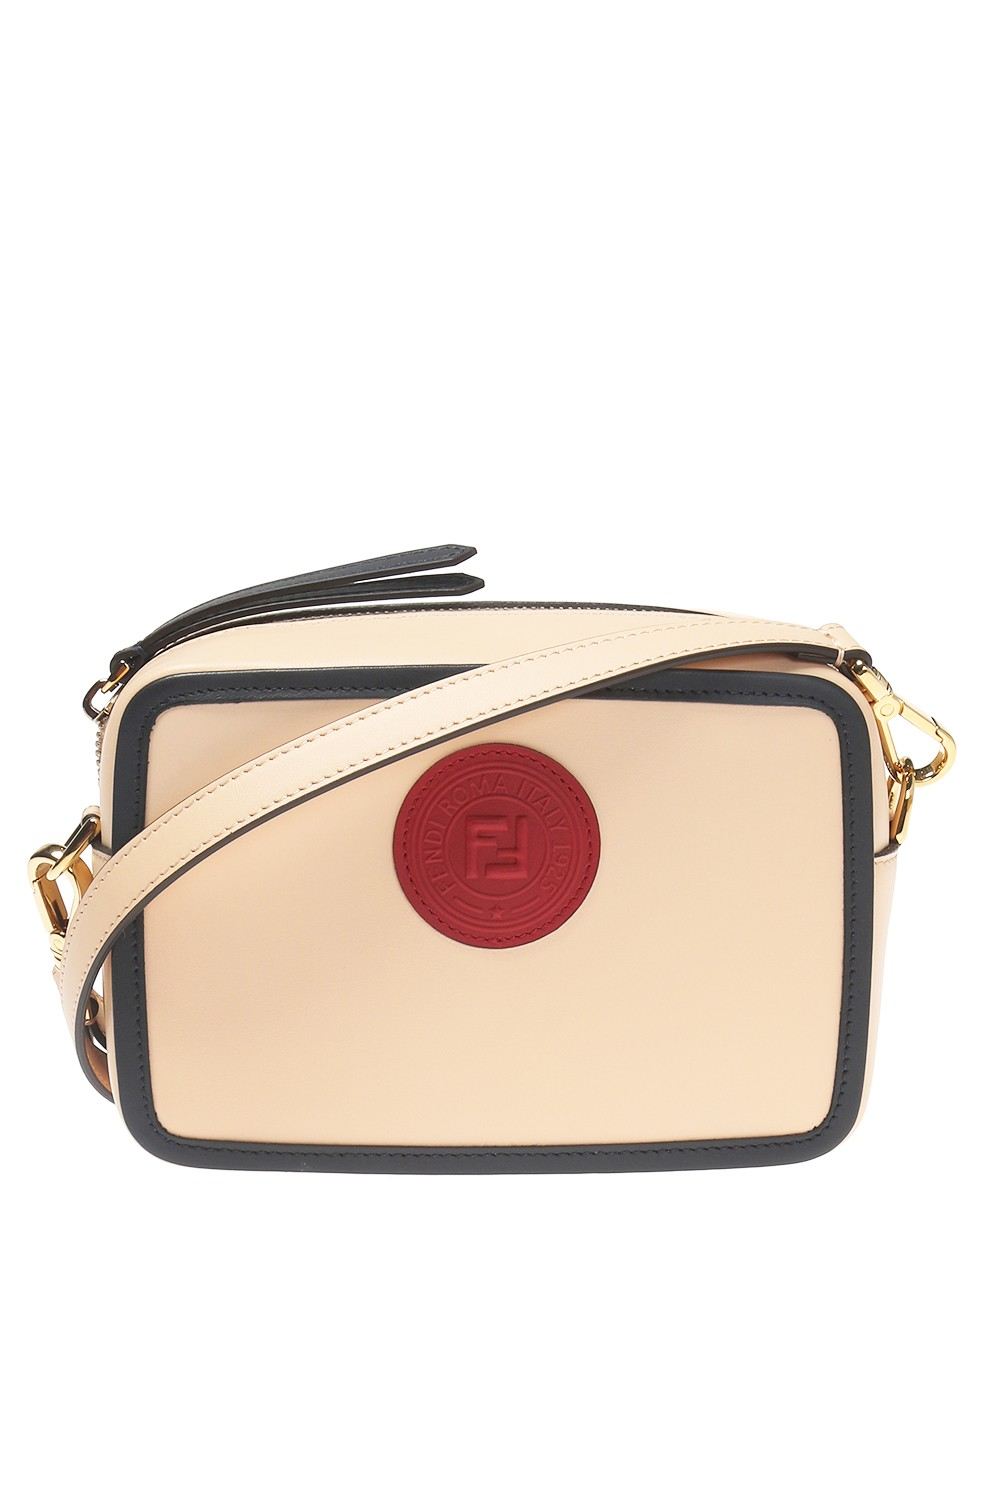 Fendi Shoulder bag with logo